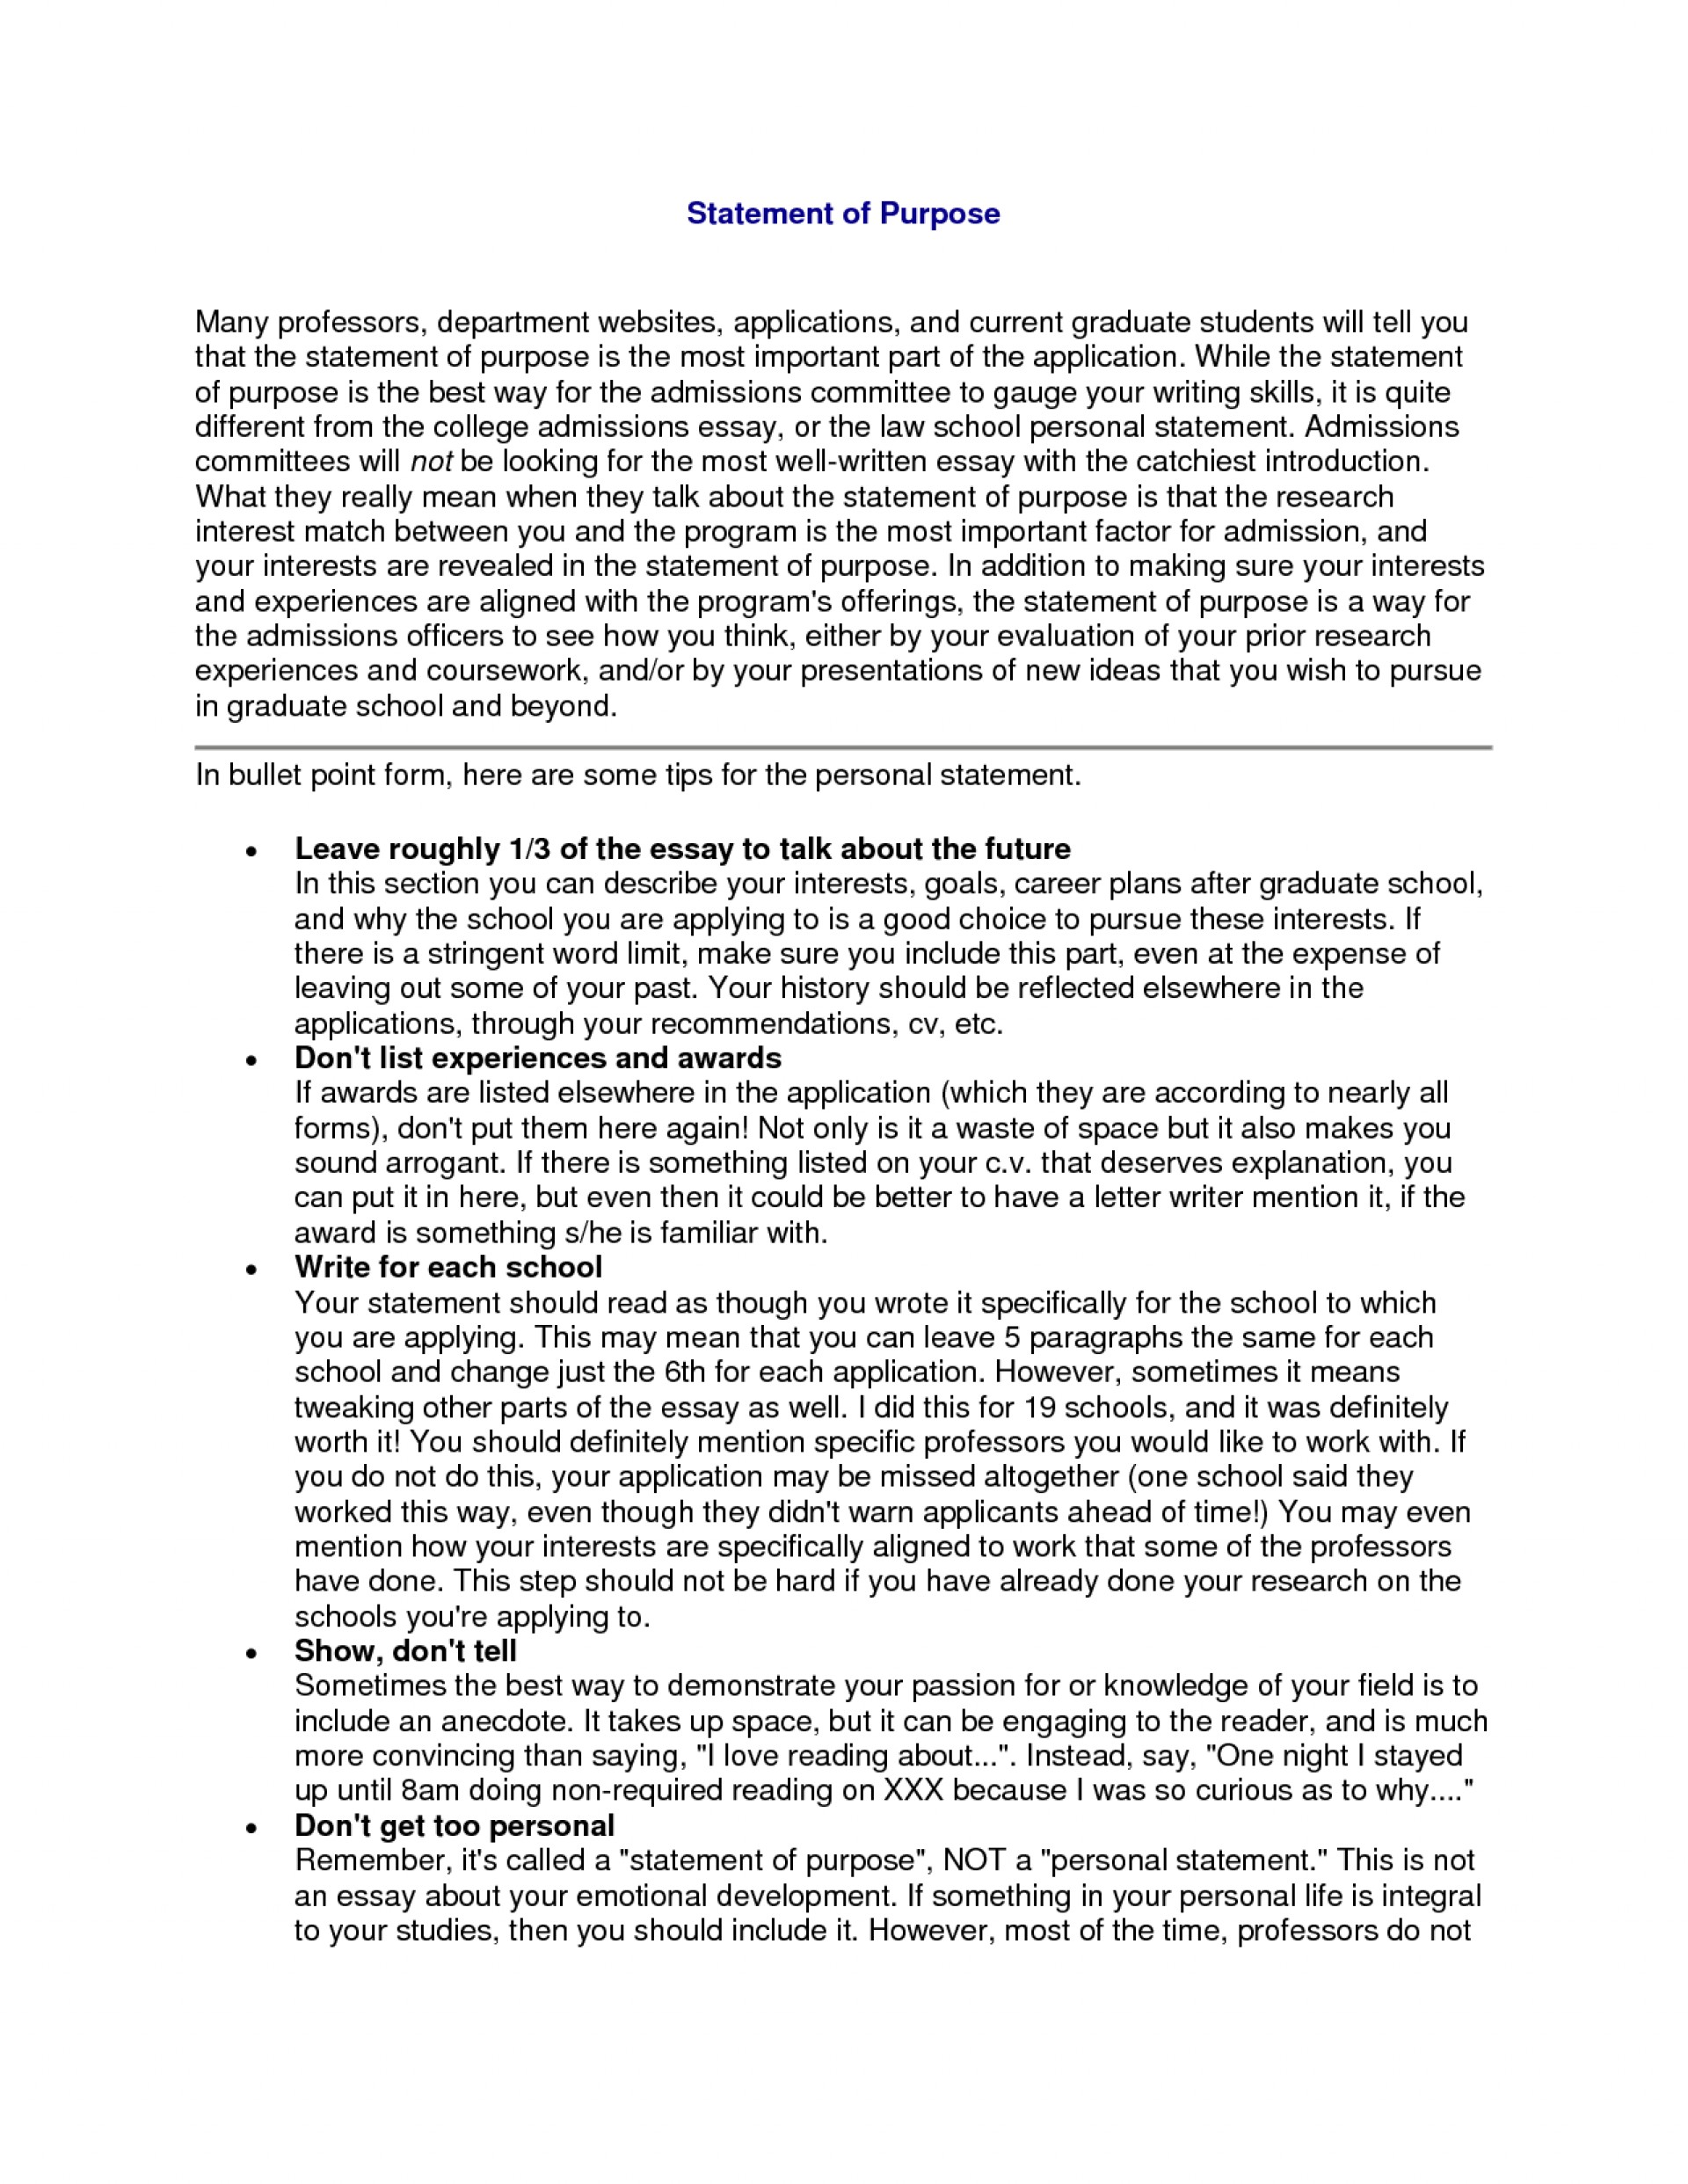 003 Statement Of Purpose Sample Essays Essay Example Graduate School Fearsome Education Psychology Mba 1920